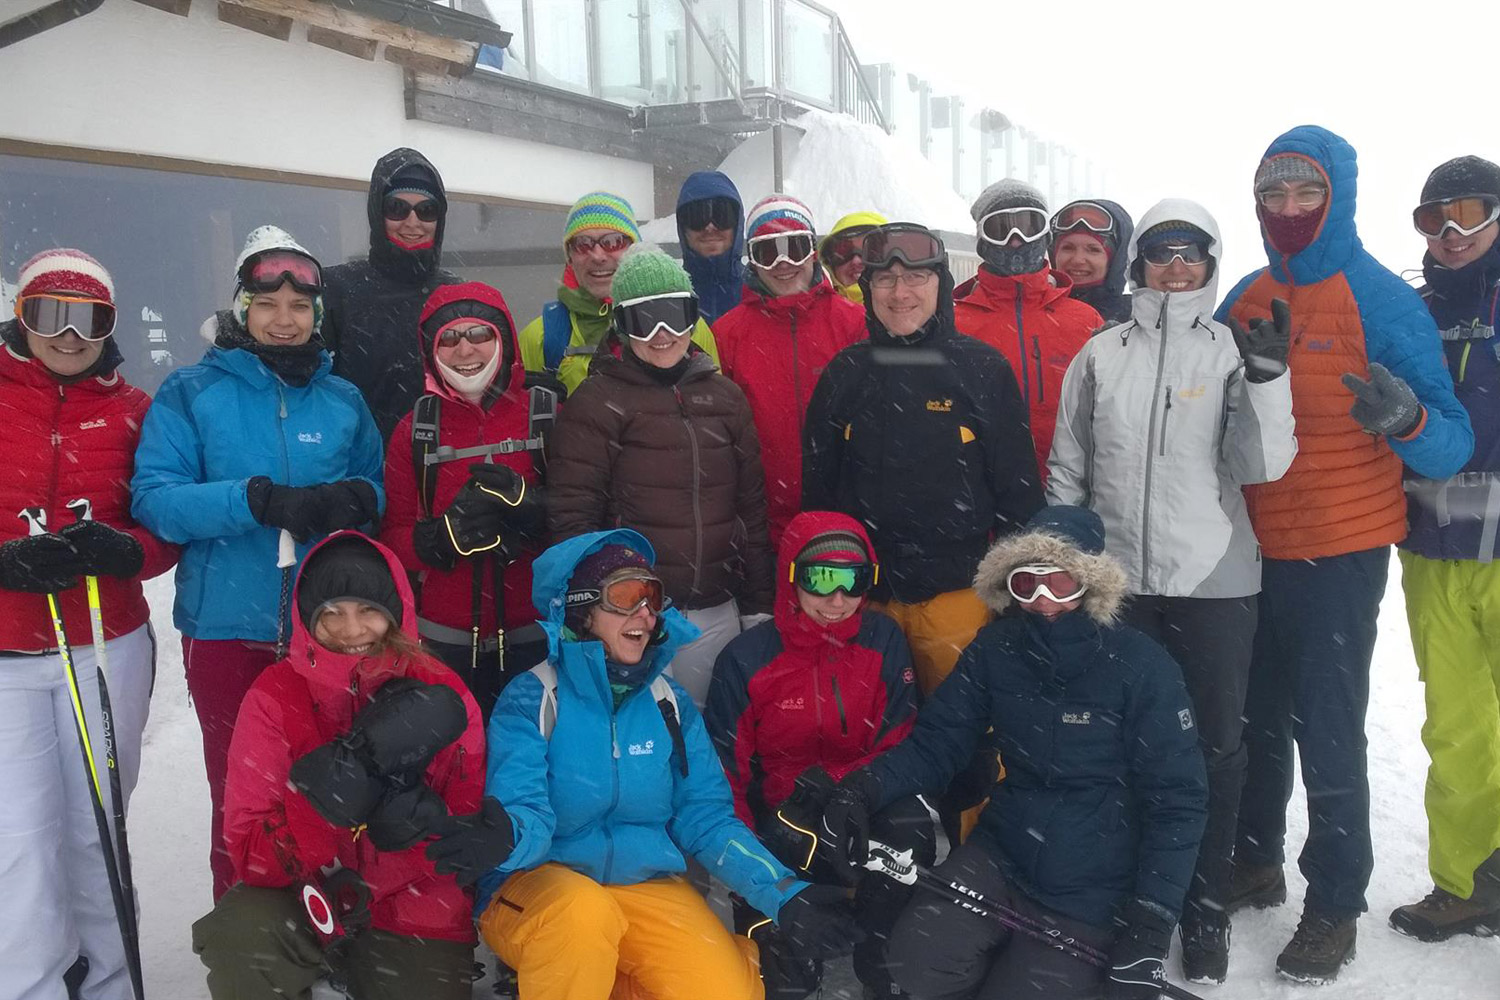 Skiing and snowboarding 2015 in Zell am See (Austria)